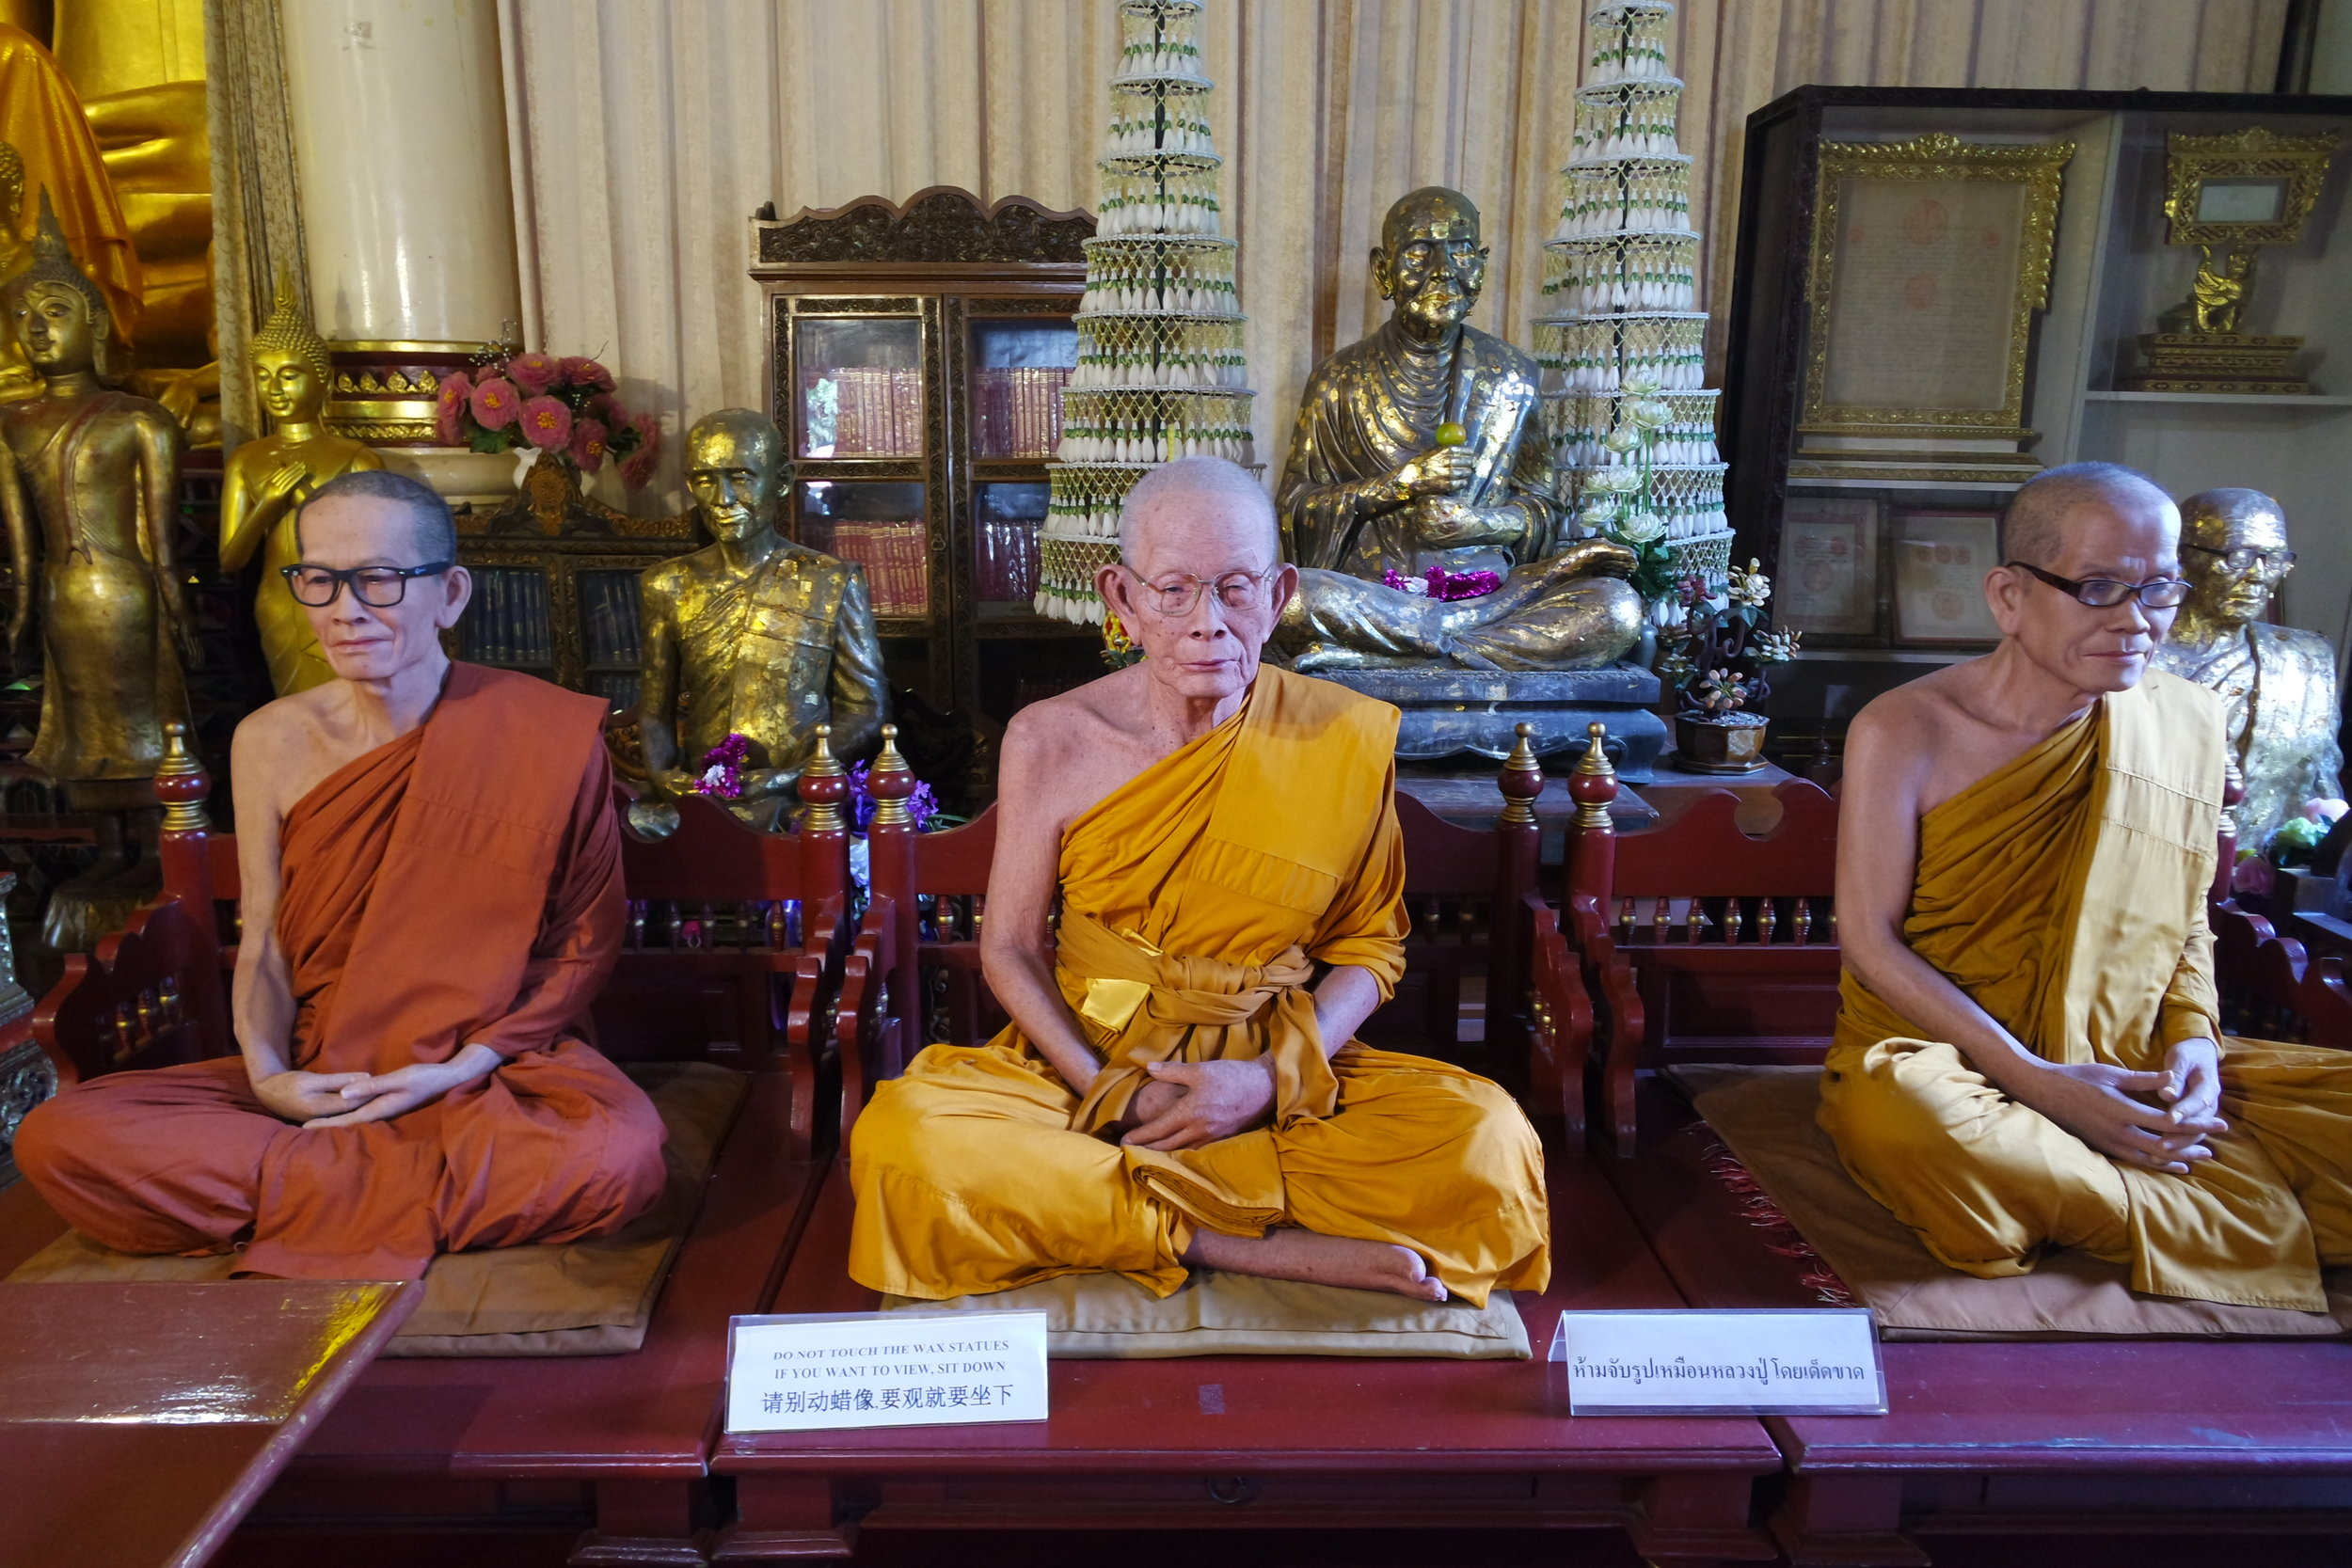 These monks sure can sit still